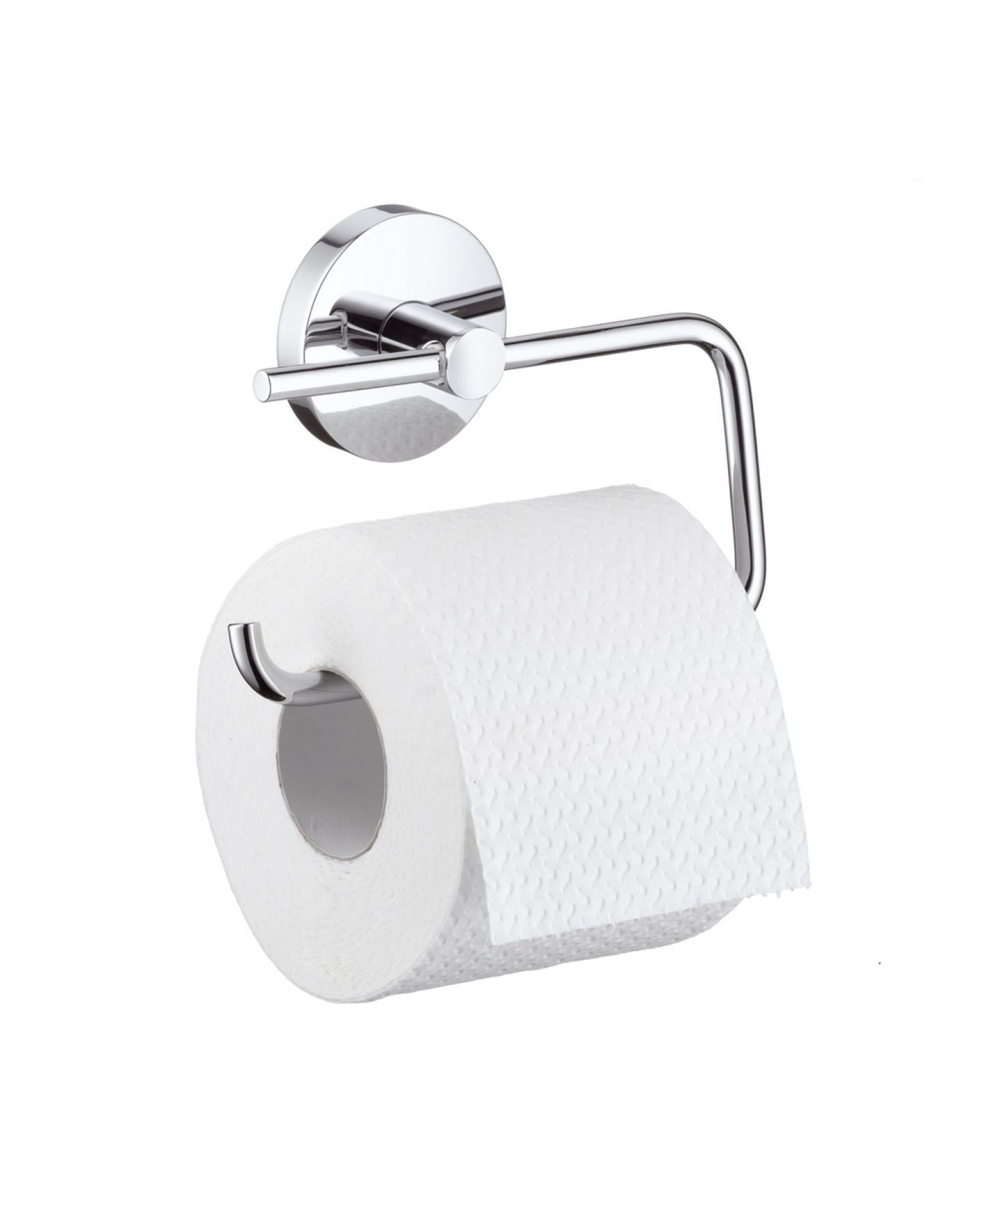 Hansgrohe Logis Toilet Roll Holder 40526000